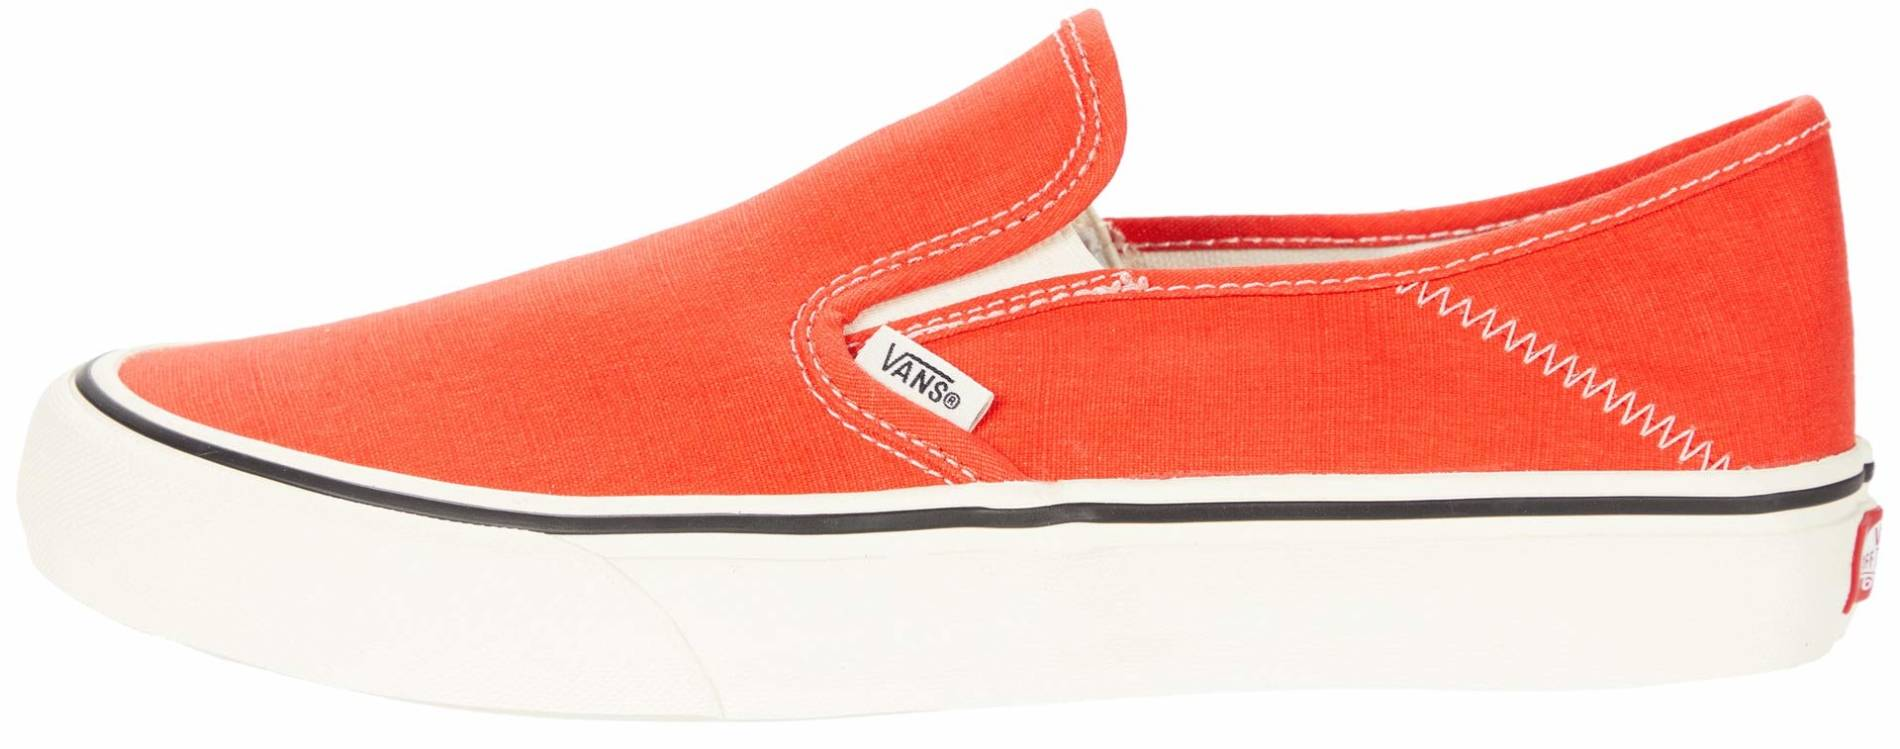 Only $50 + Review of Vans Slip-On SF